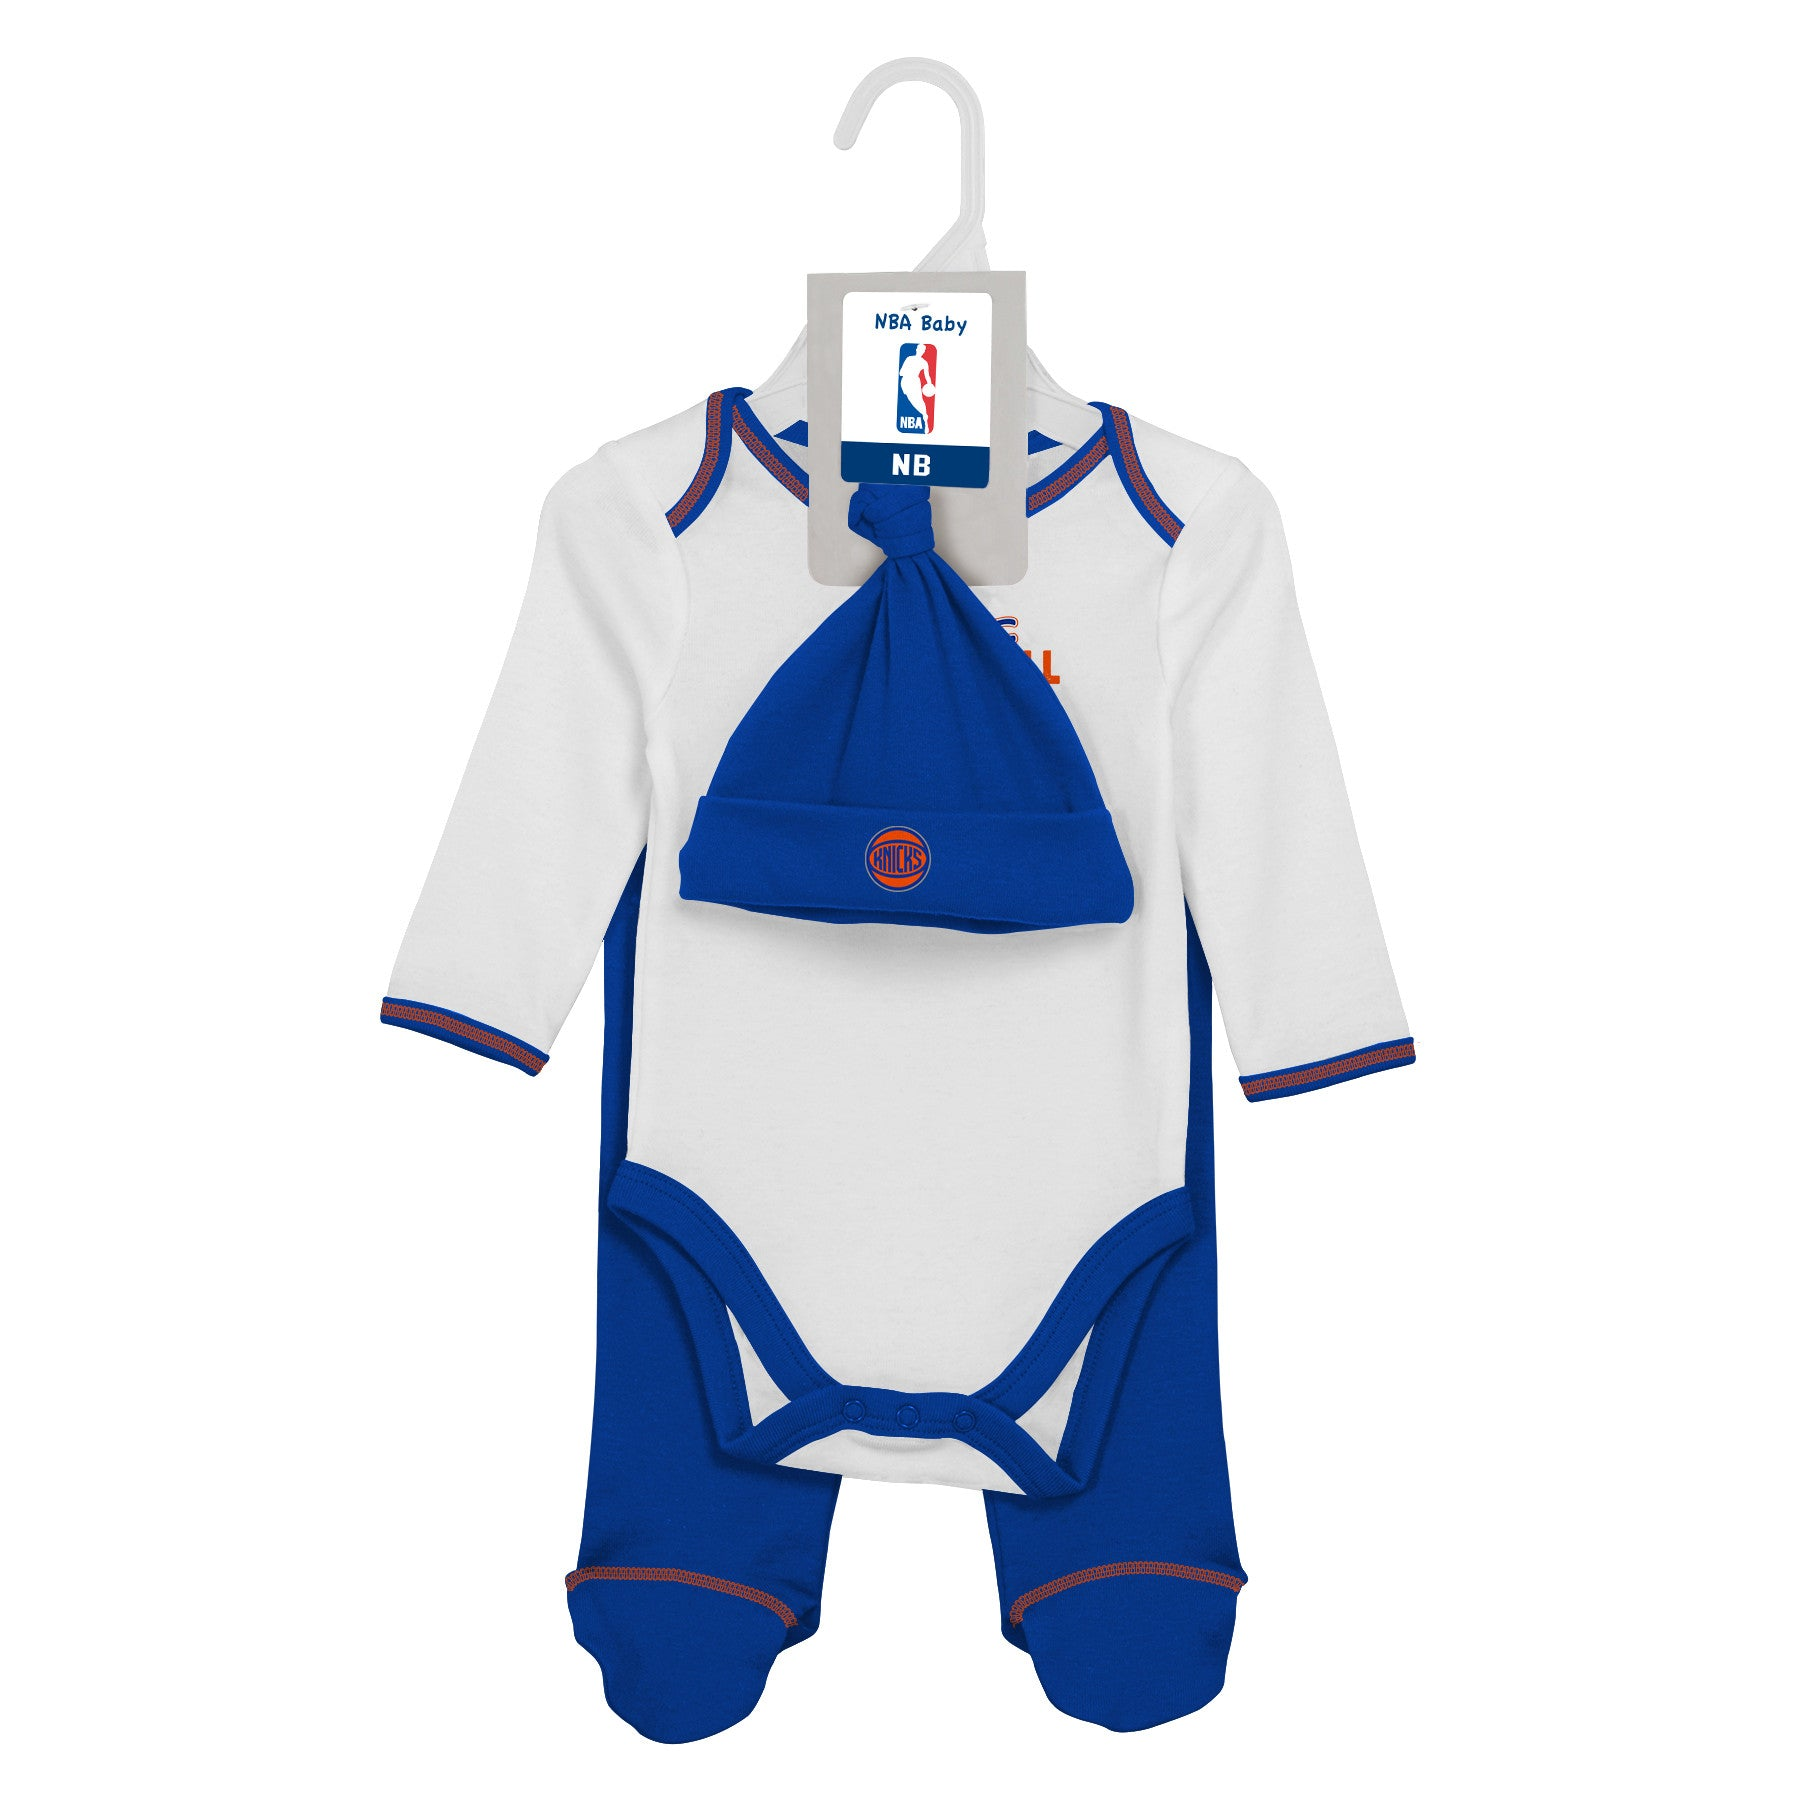 a26aba98 New York Knicks Future Basketball Legend 3 Piece Outfit – babyfans